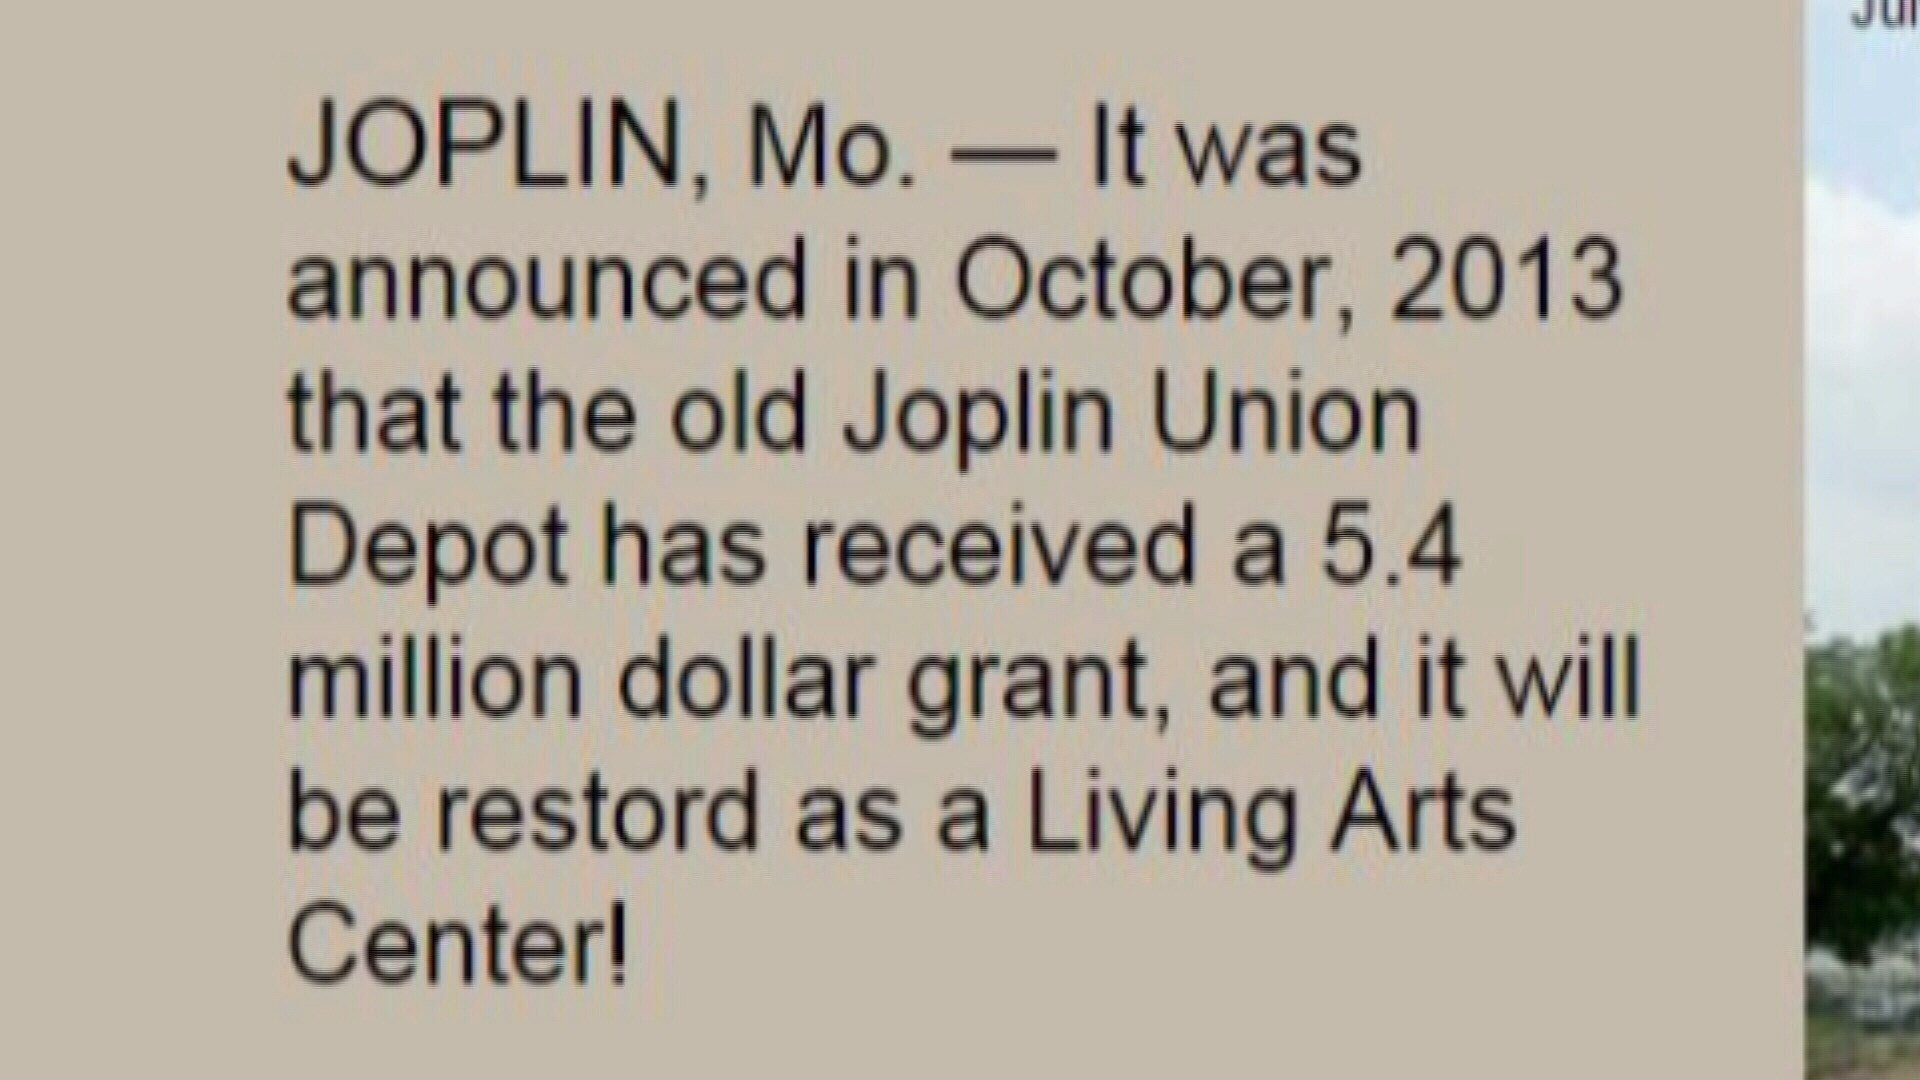 An online publication that said grant money had been awarded for depot renovations